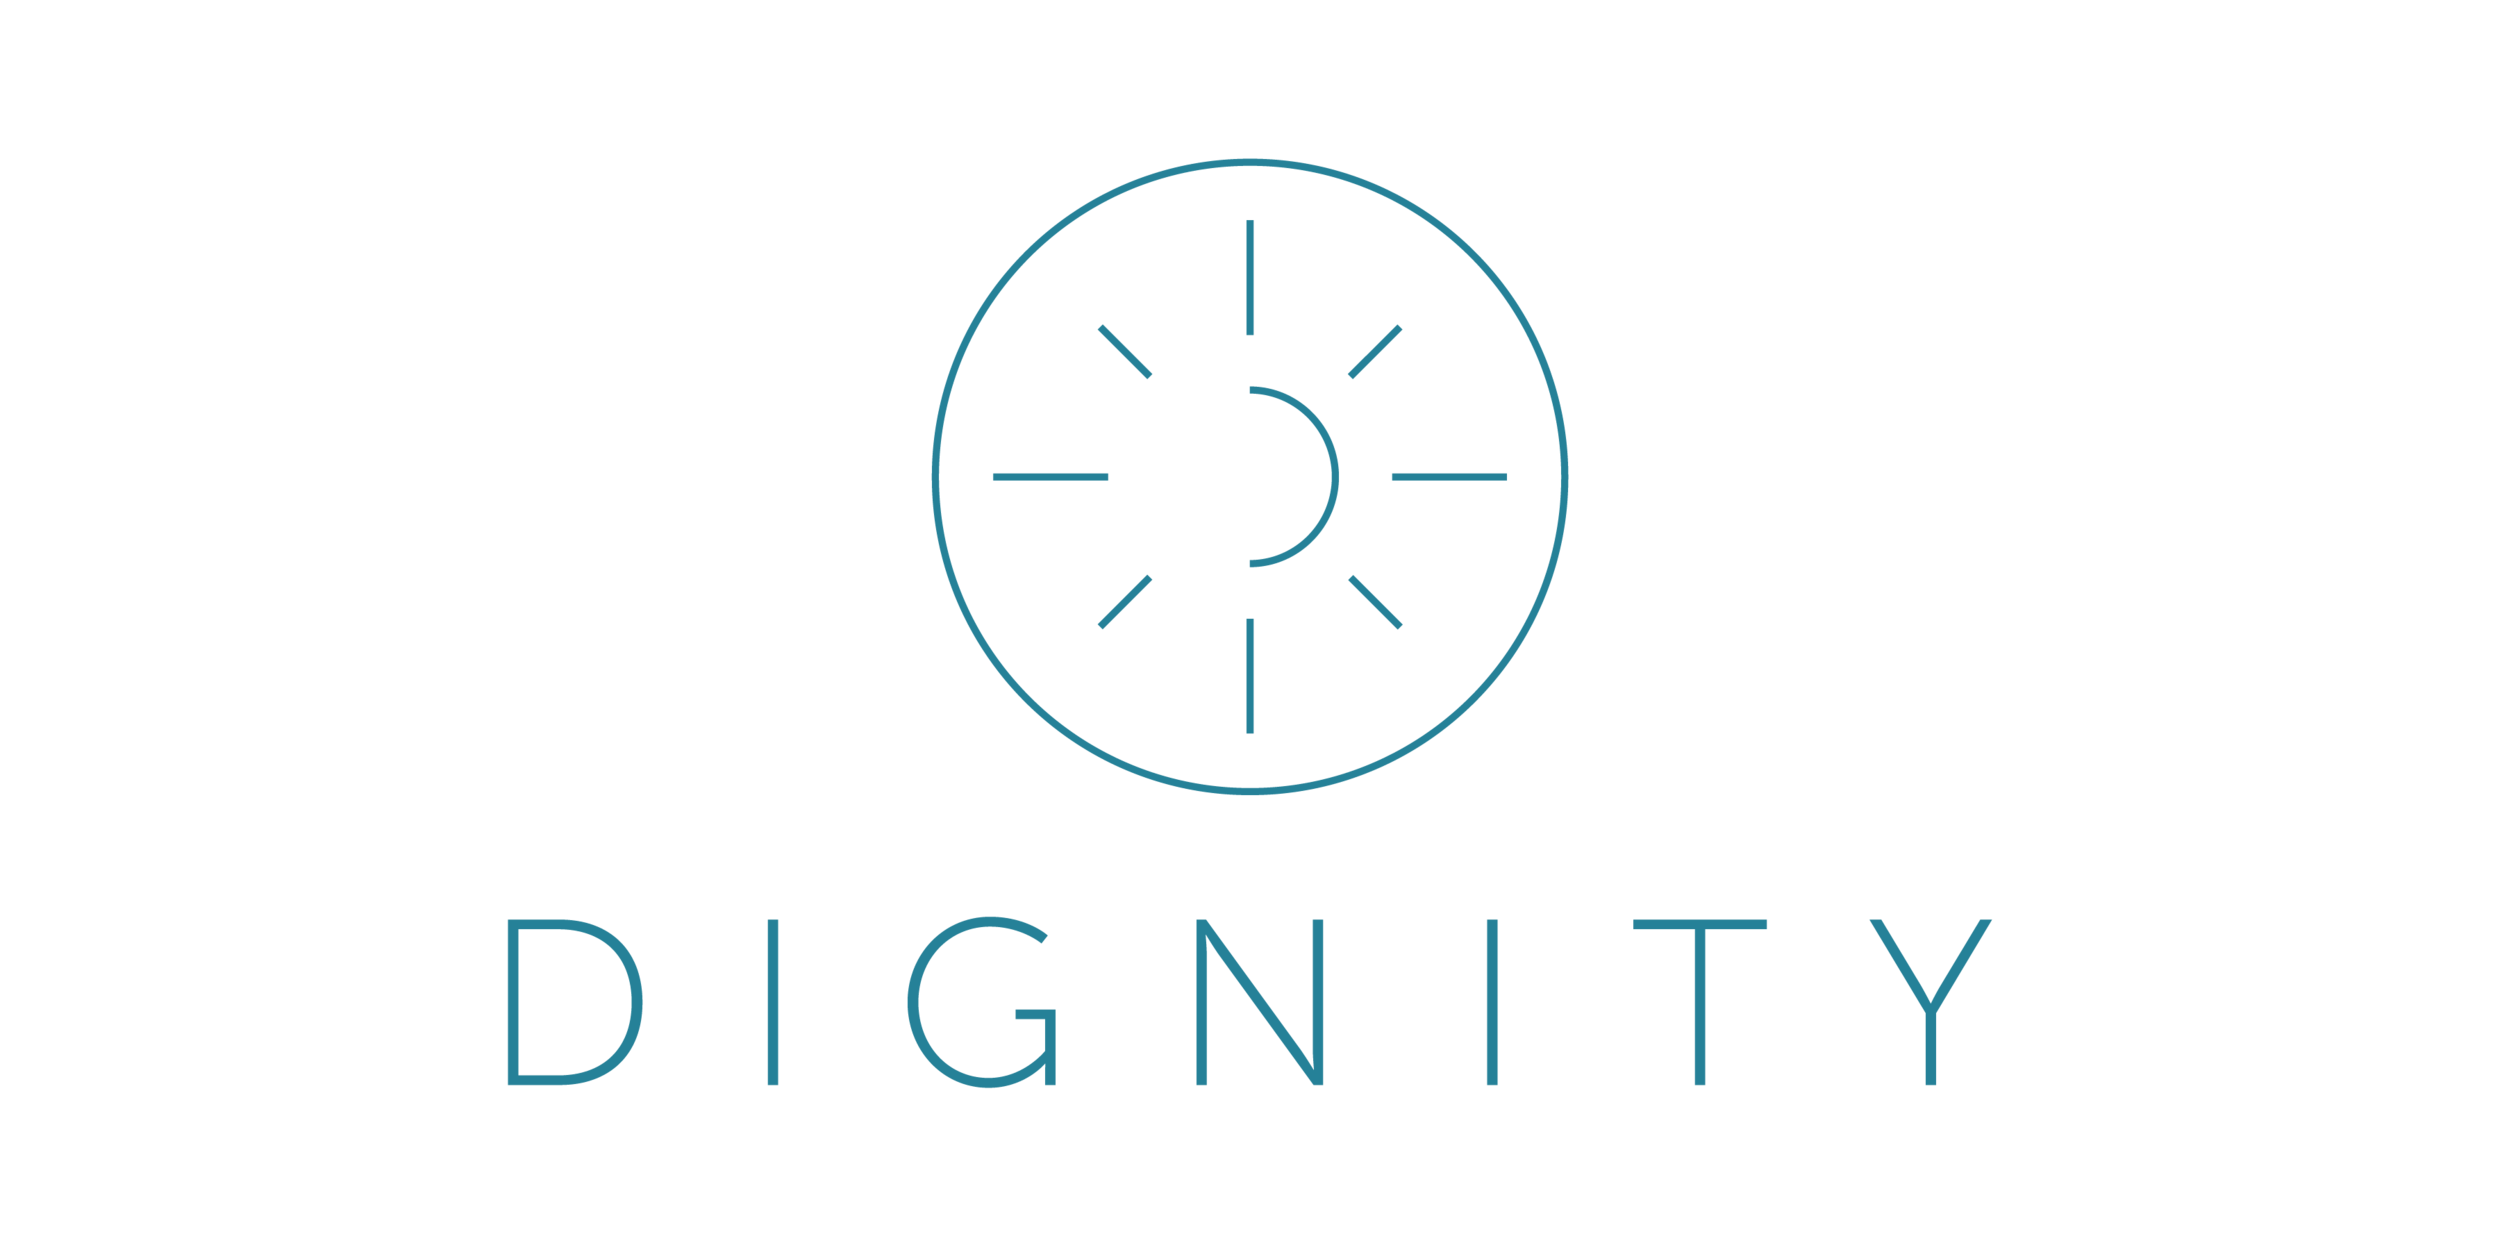 Dignity_primary logo_teal.png